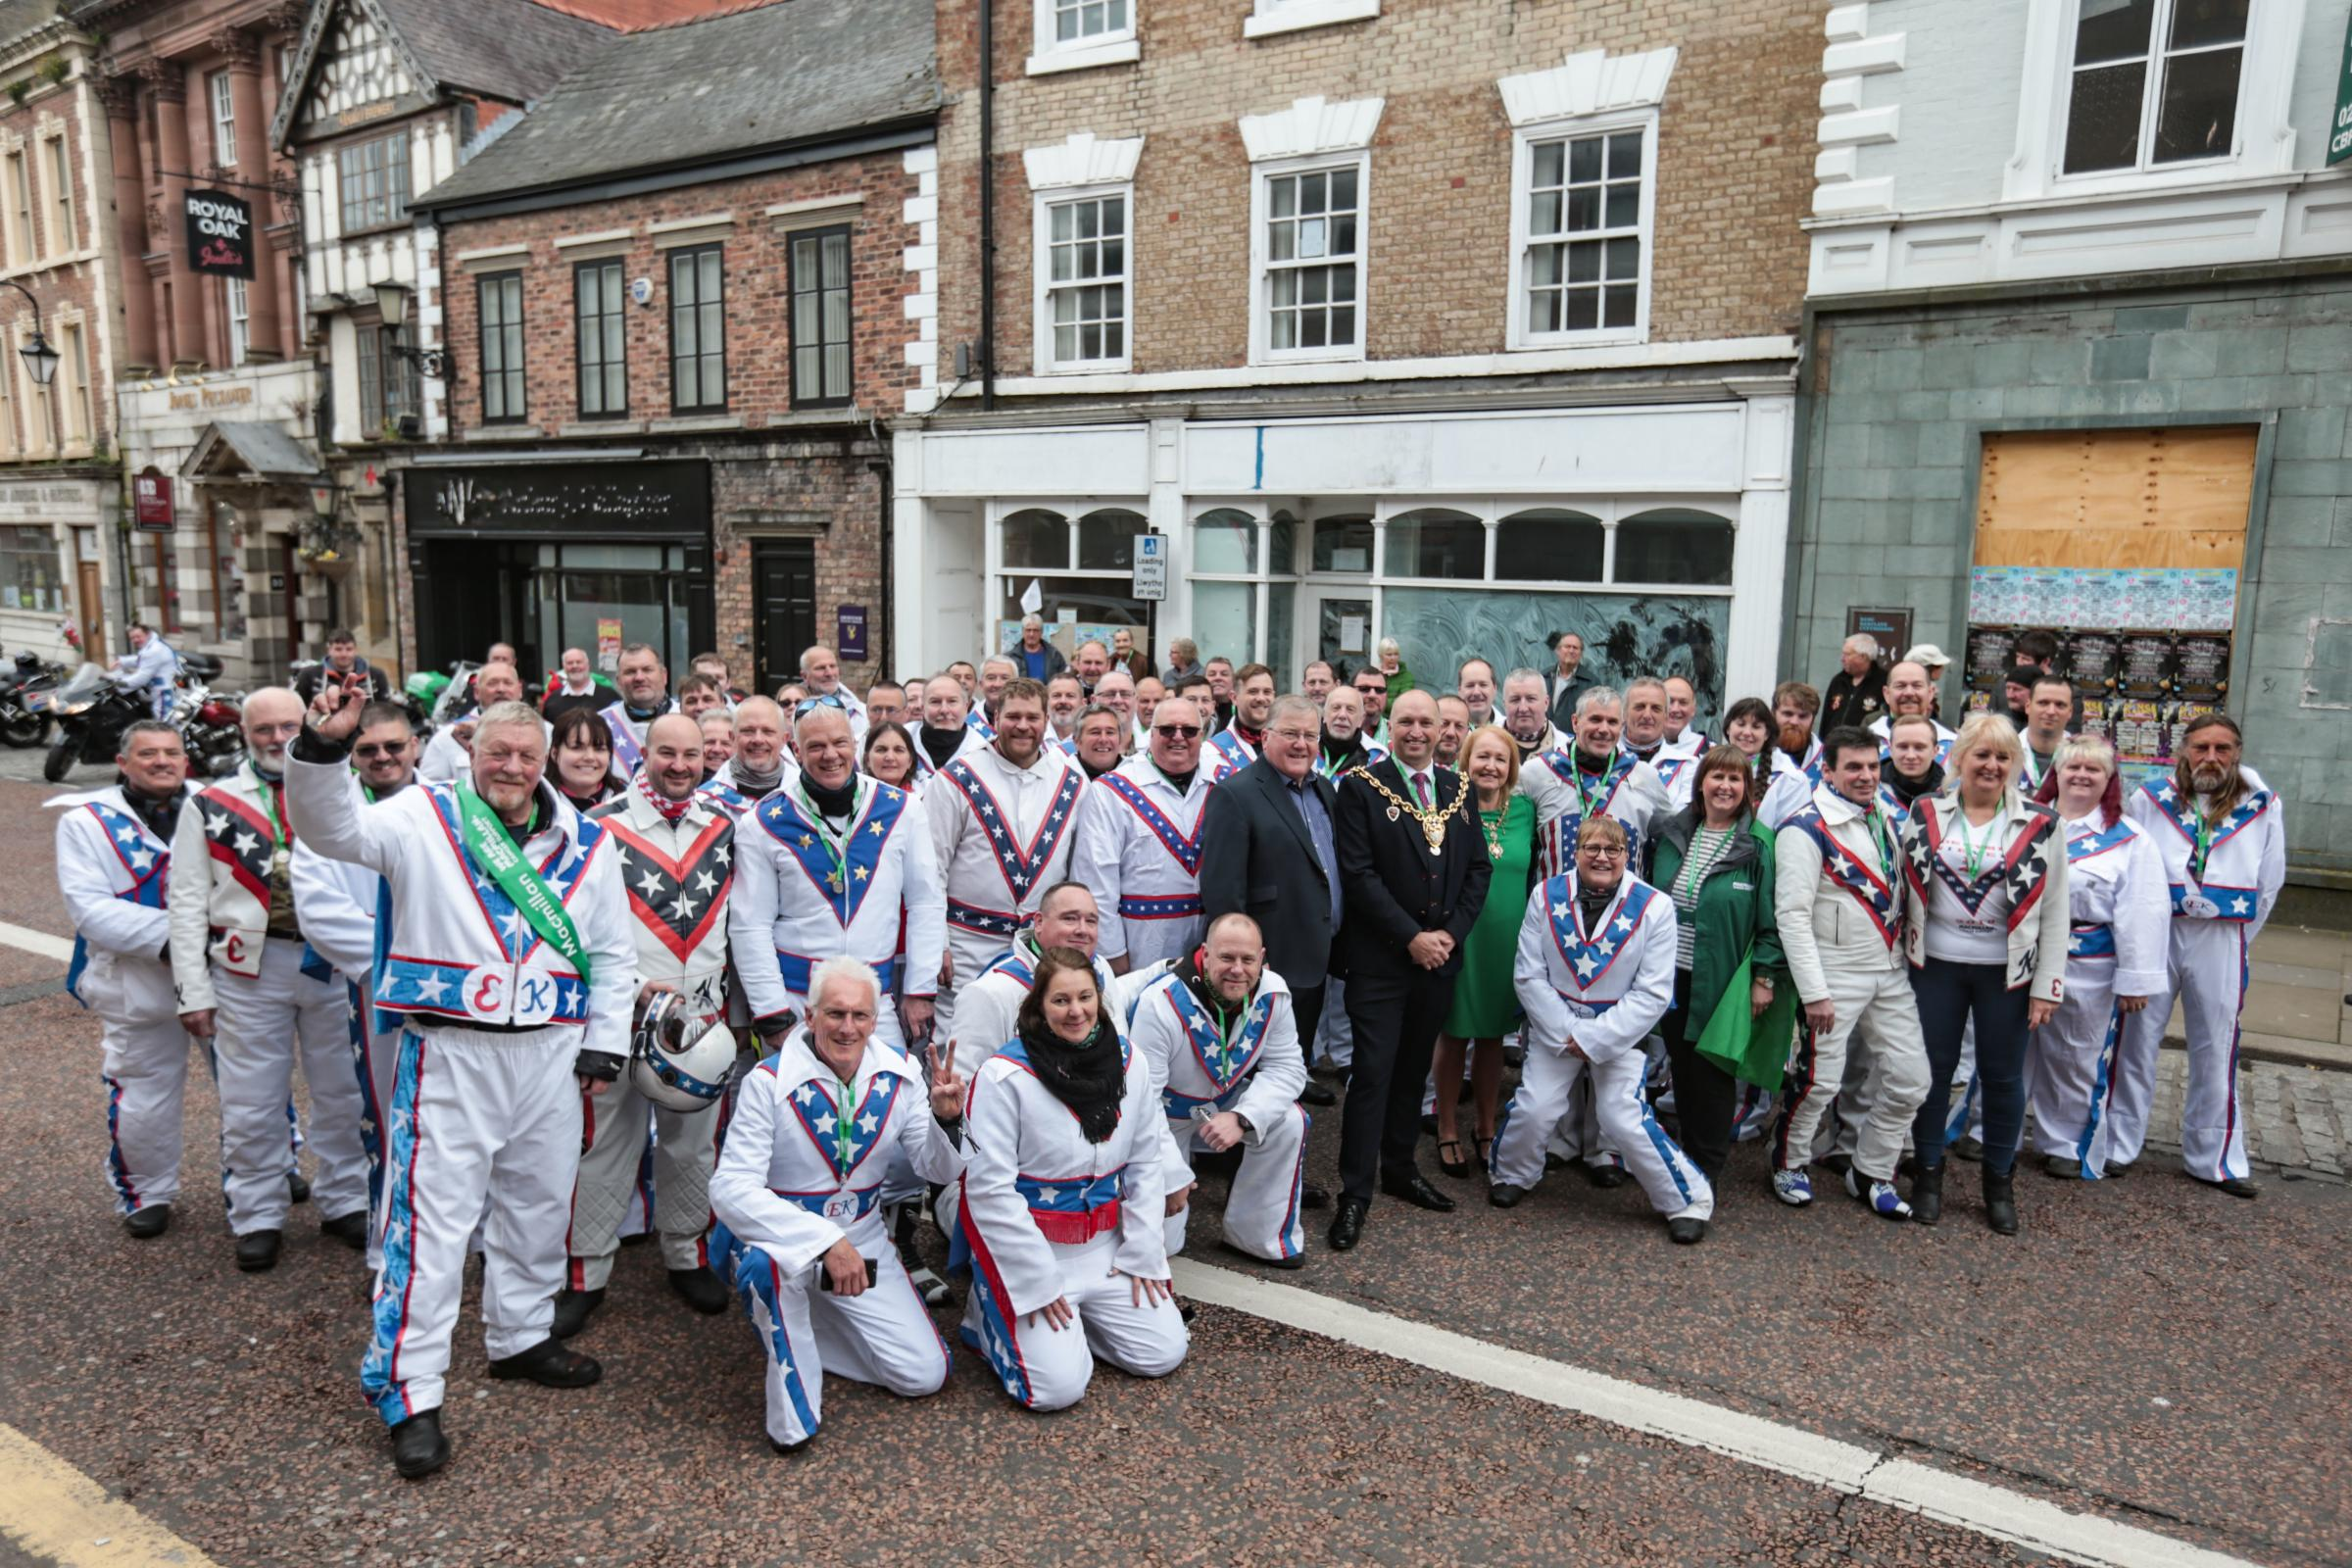 Evel Knievel charity riders roar back into Wrexham